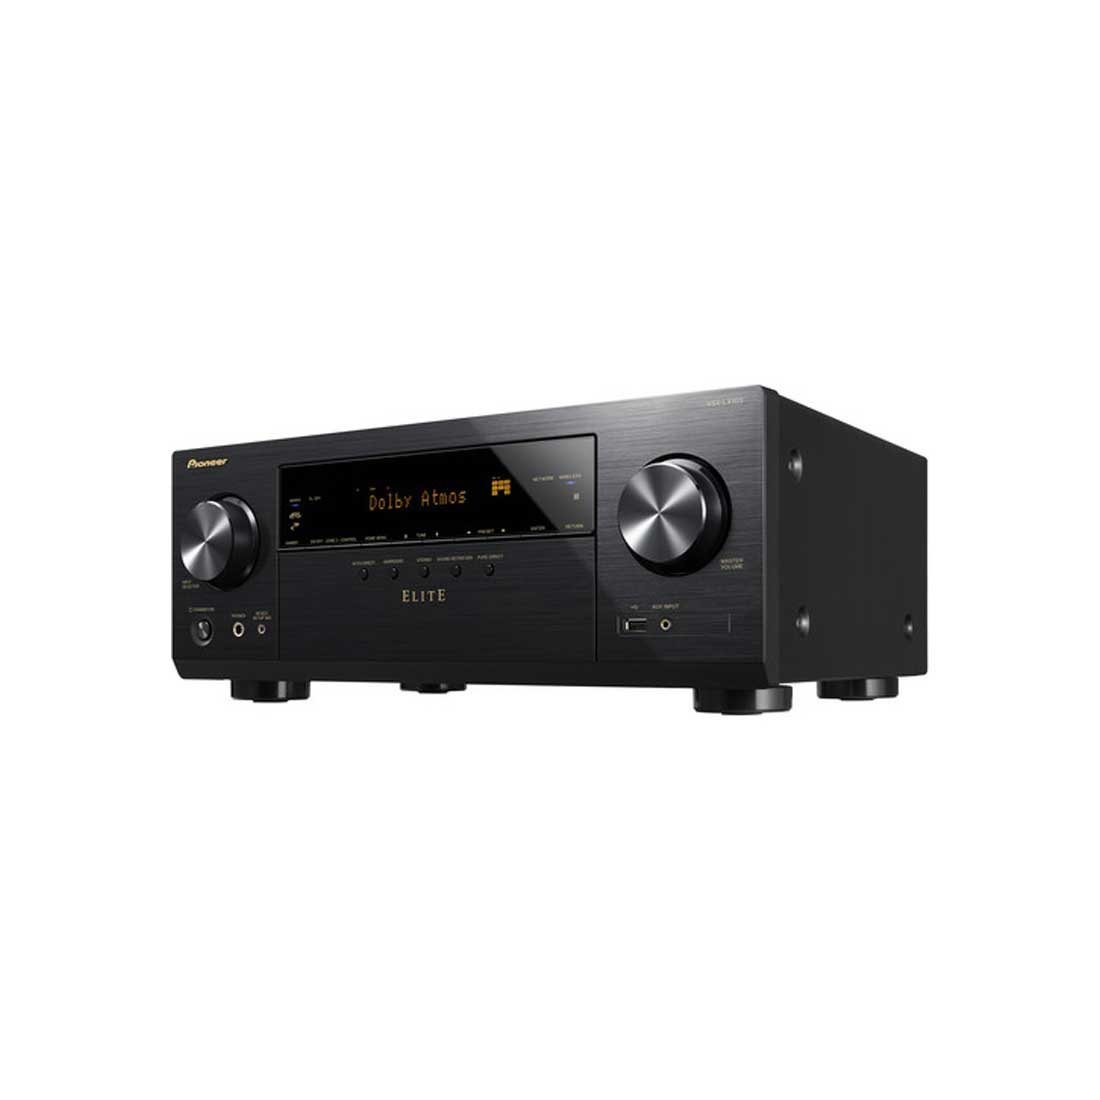 home theatre shelf bauhn diagram pioneer elite vsx-lx103 7.2-channel network a/v receiver